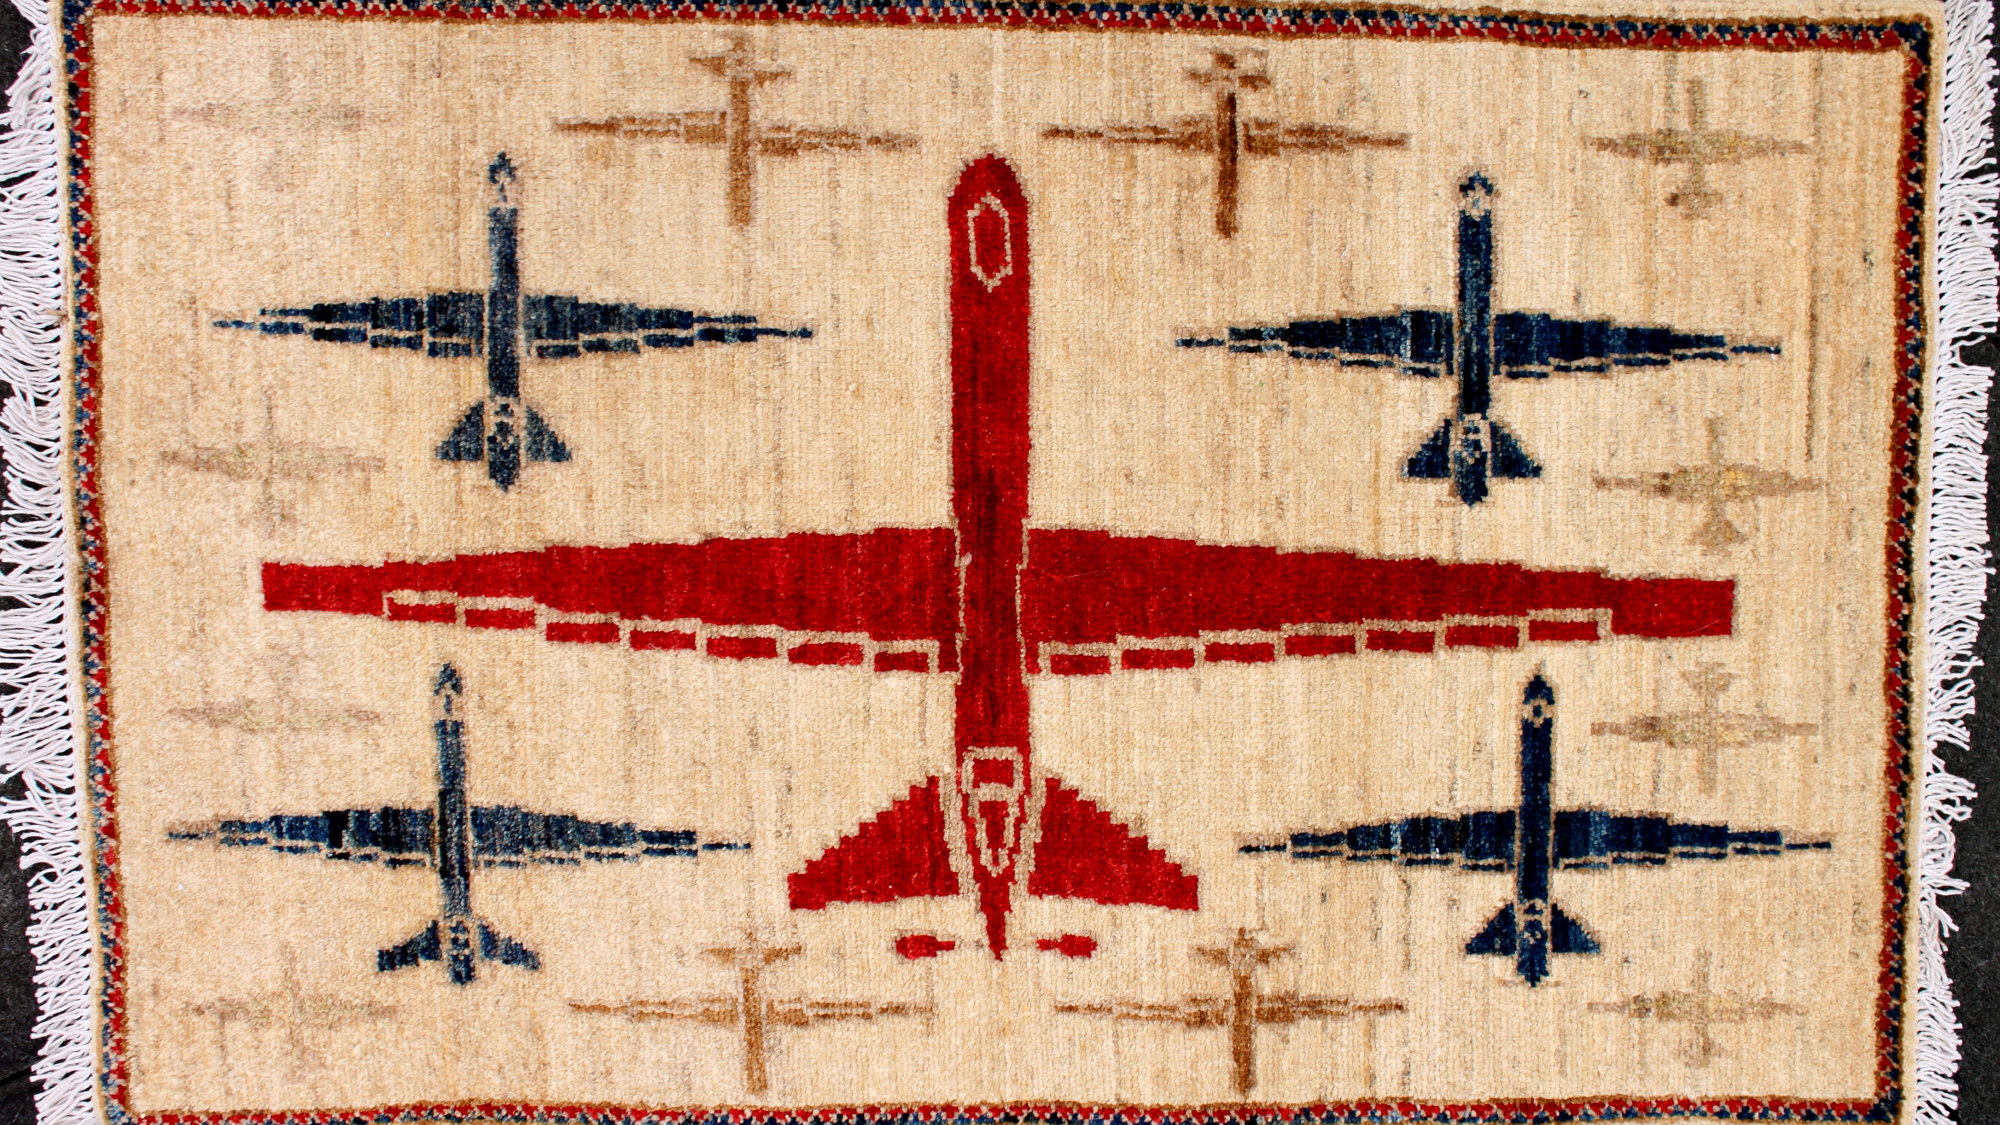 drones on rugs